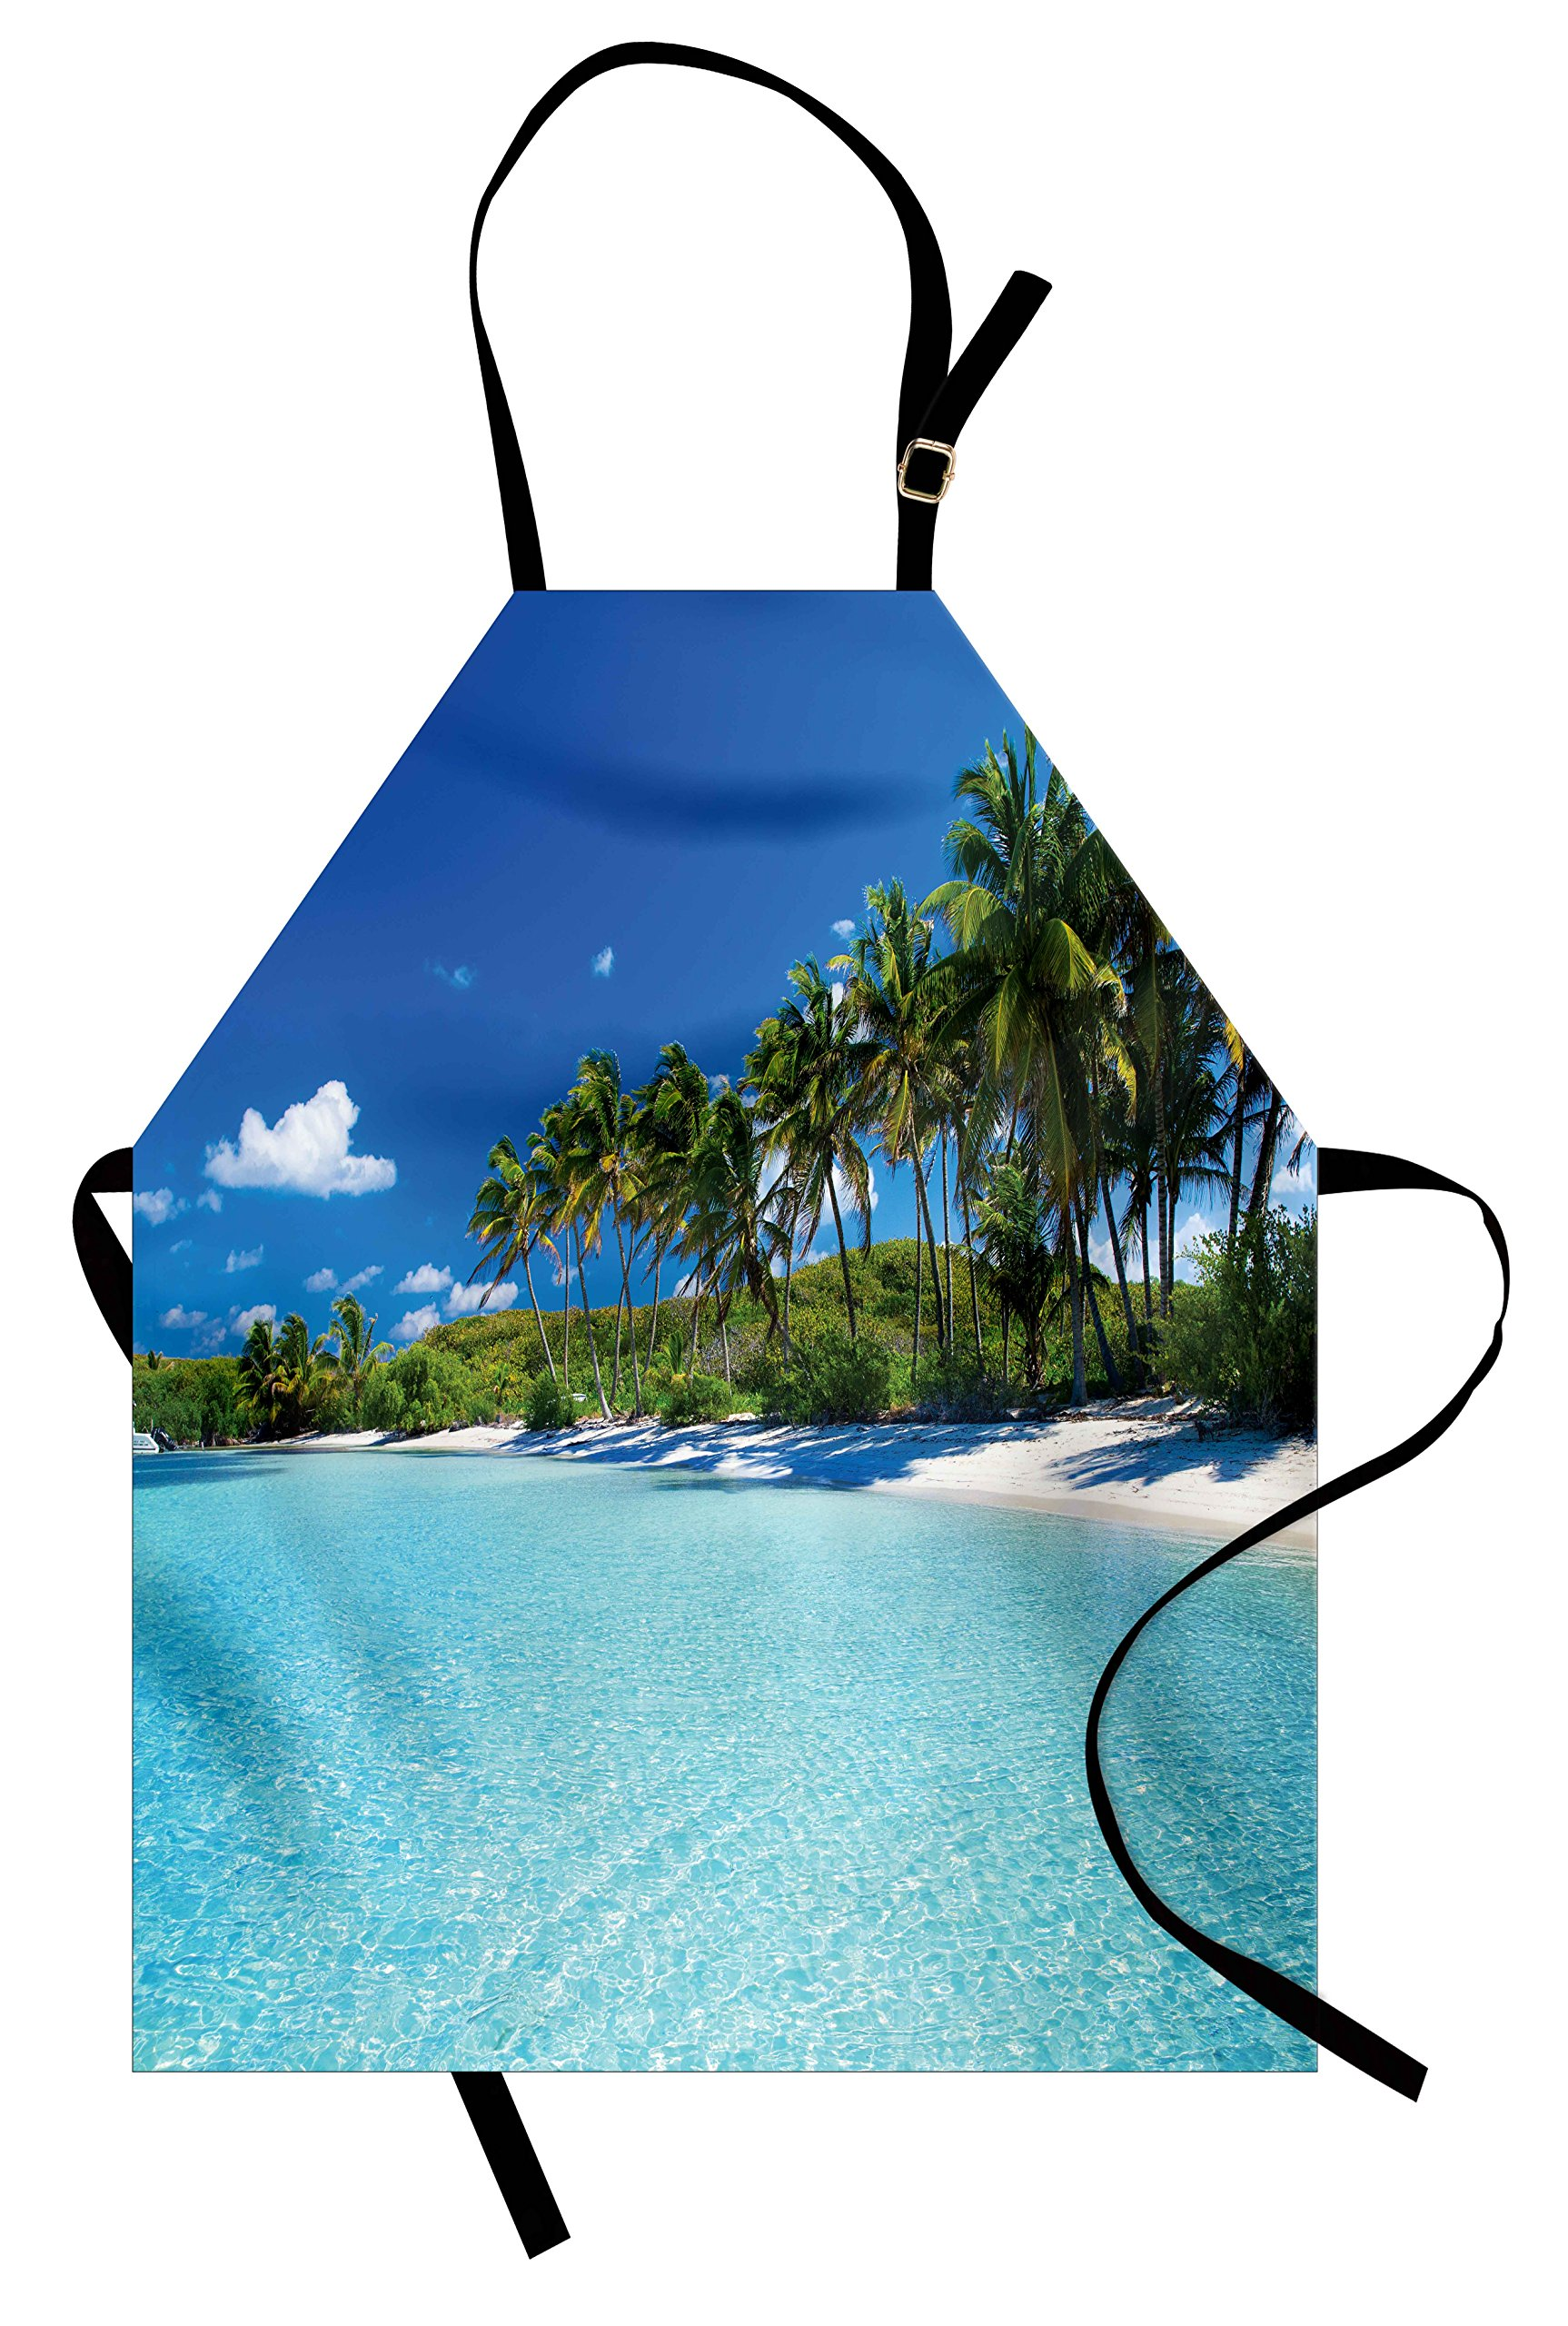 Ambesonne Ocean Apron, Relaxing Beach Resort Spa Palm Trees and Sea Exotic Caribbean Coastline, Unisex Kitchen Bib Apron with Adjustable Neck for Cooking Baking Gardening, Turquoise Blue Green